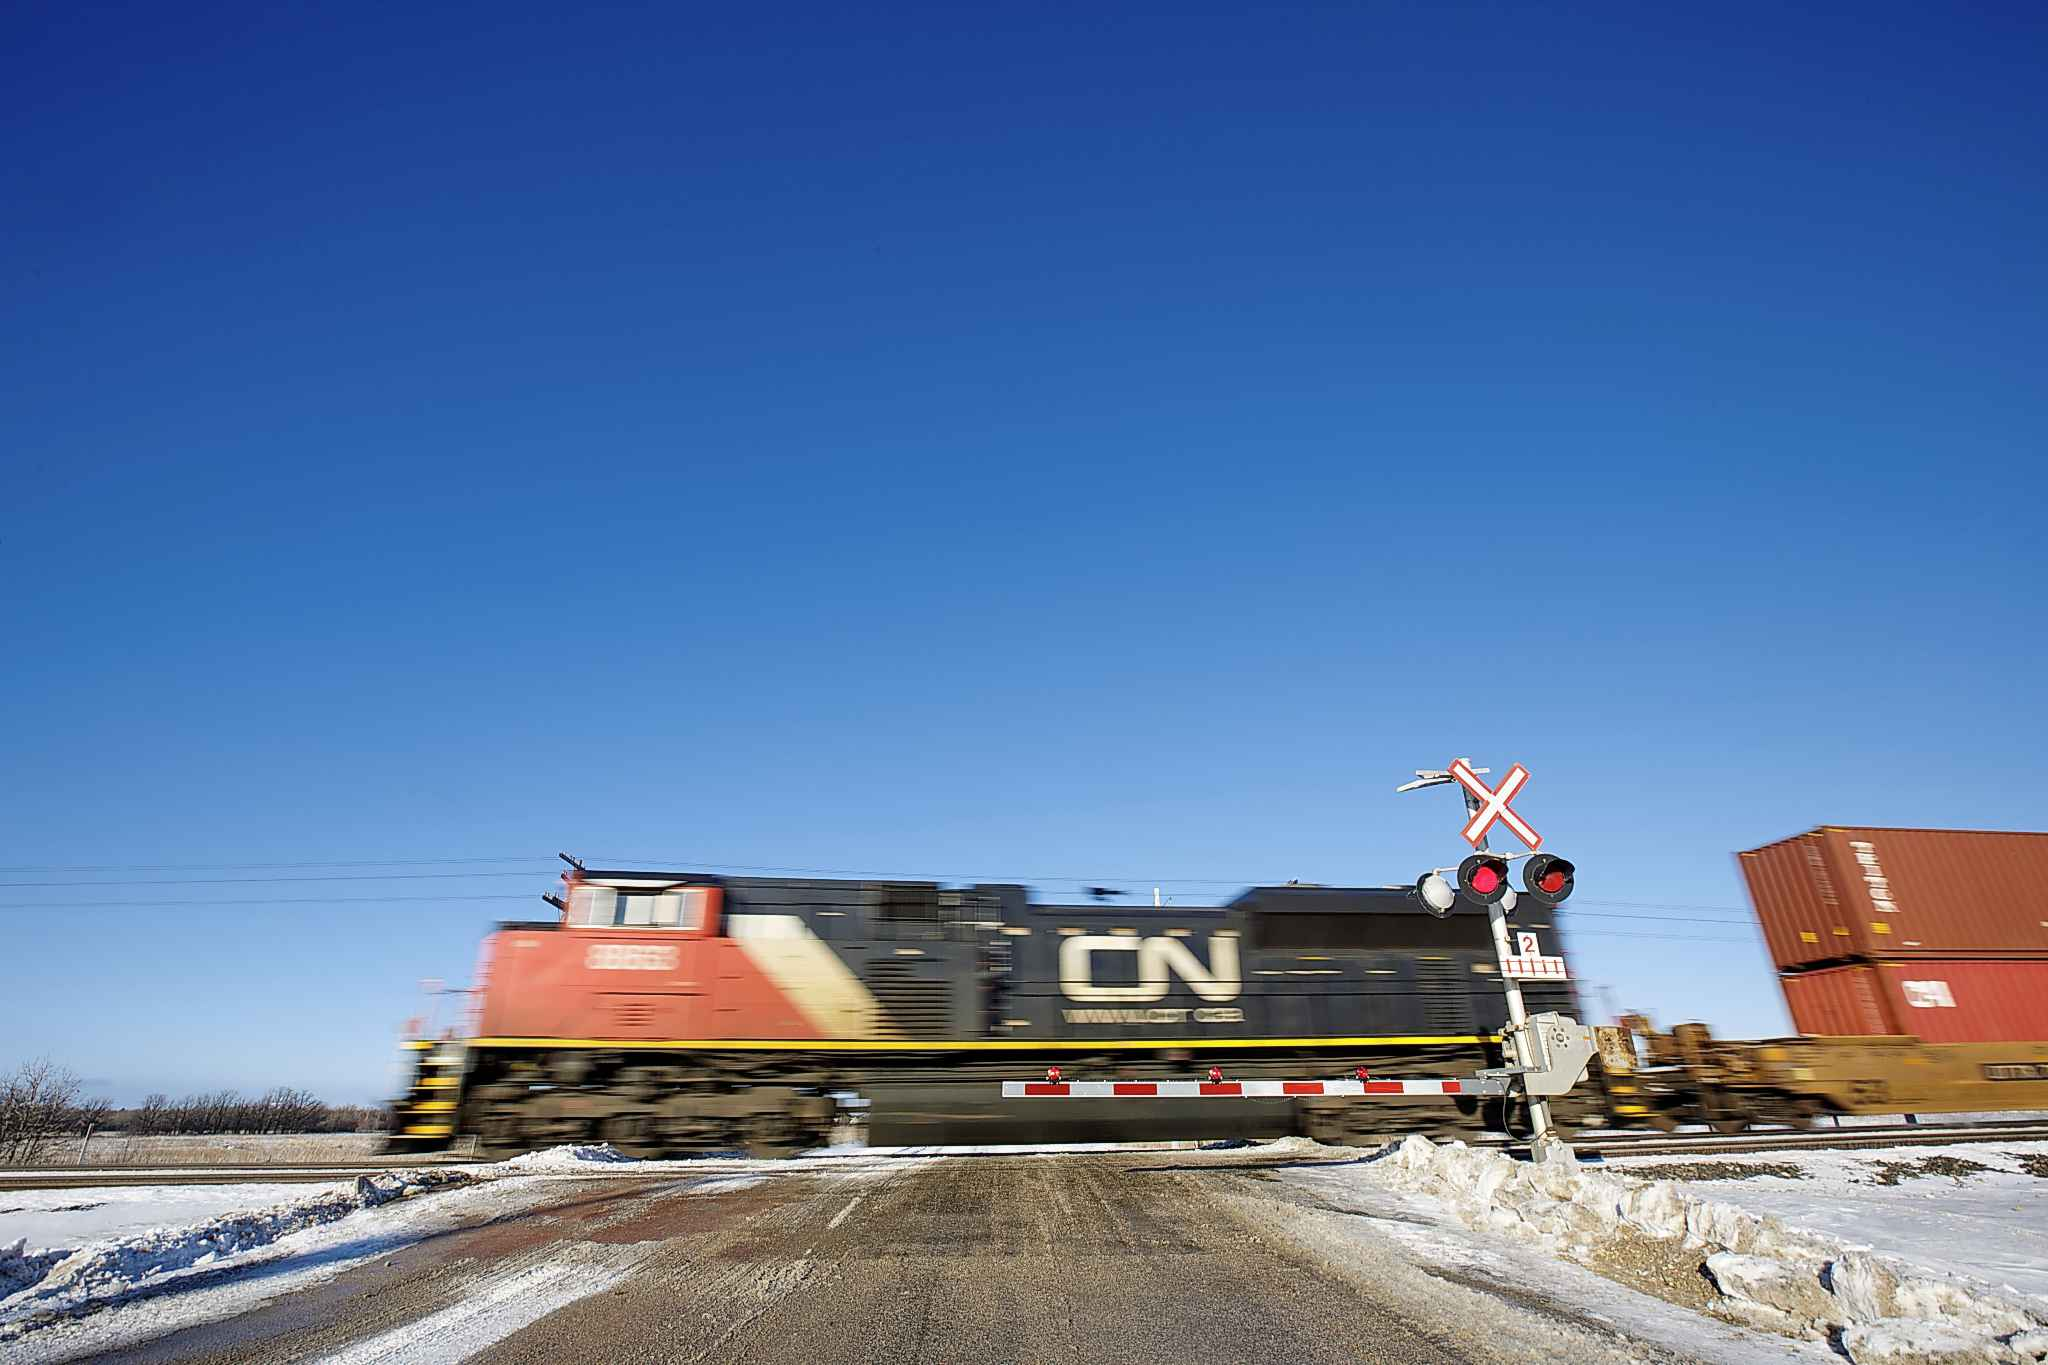 A whistleblower claimed CN had investigated 36 employees in Winnipeg who said they were unfit to work and even disciplined 19 of them.